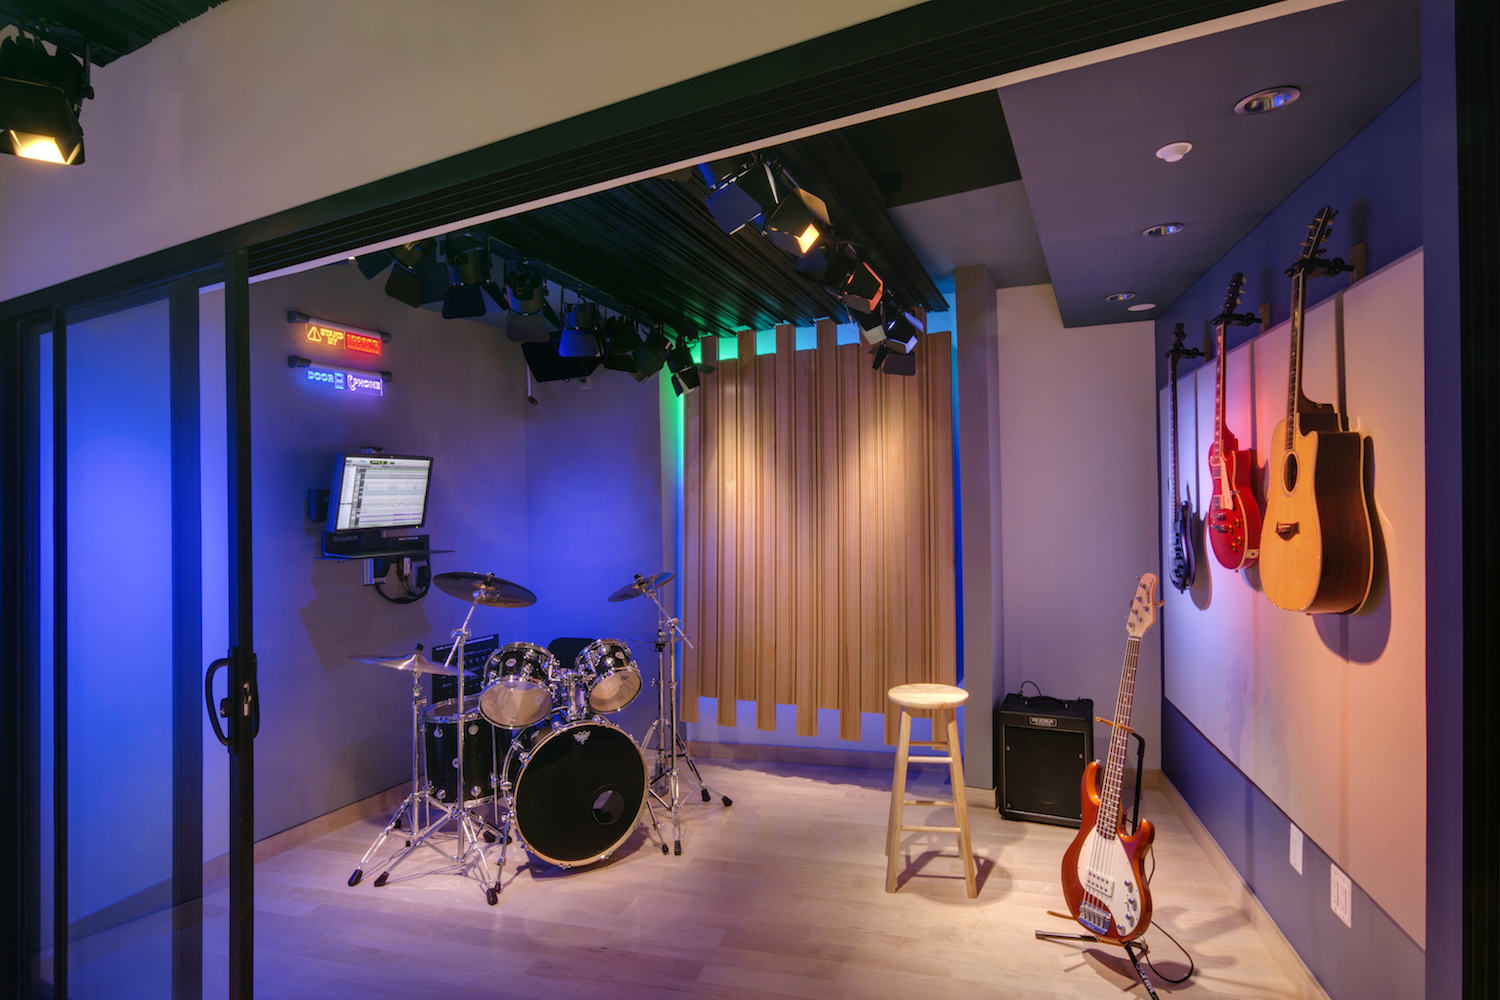 The MacPhails met WSDG to achieve a full up, professionally designed, acoustically superlative residential recording studio for their thriving audio production business. Live Room.